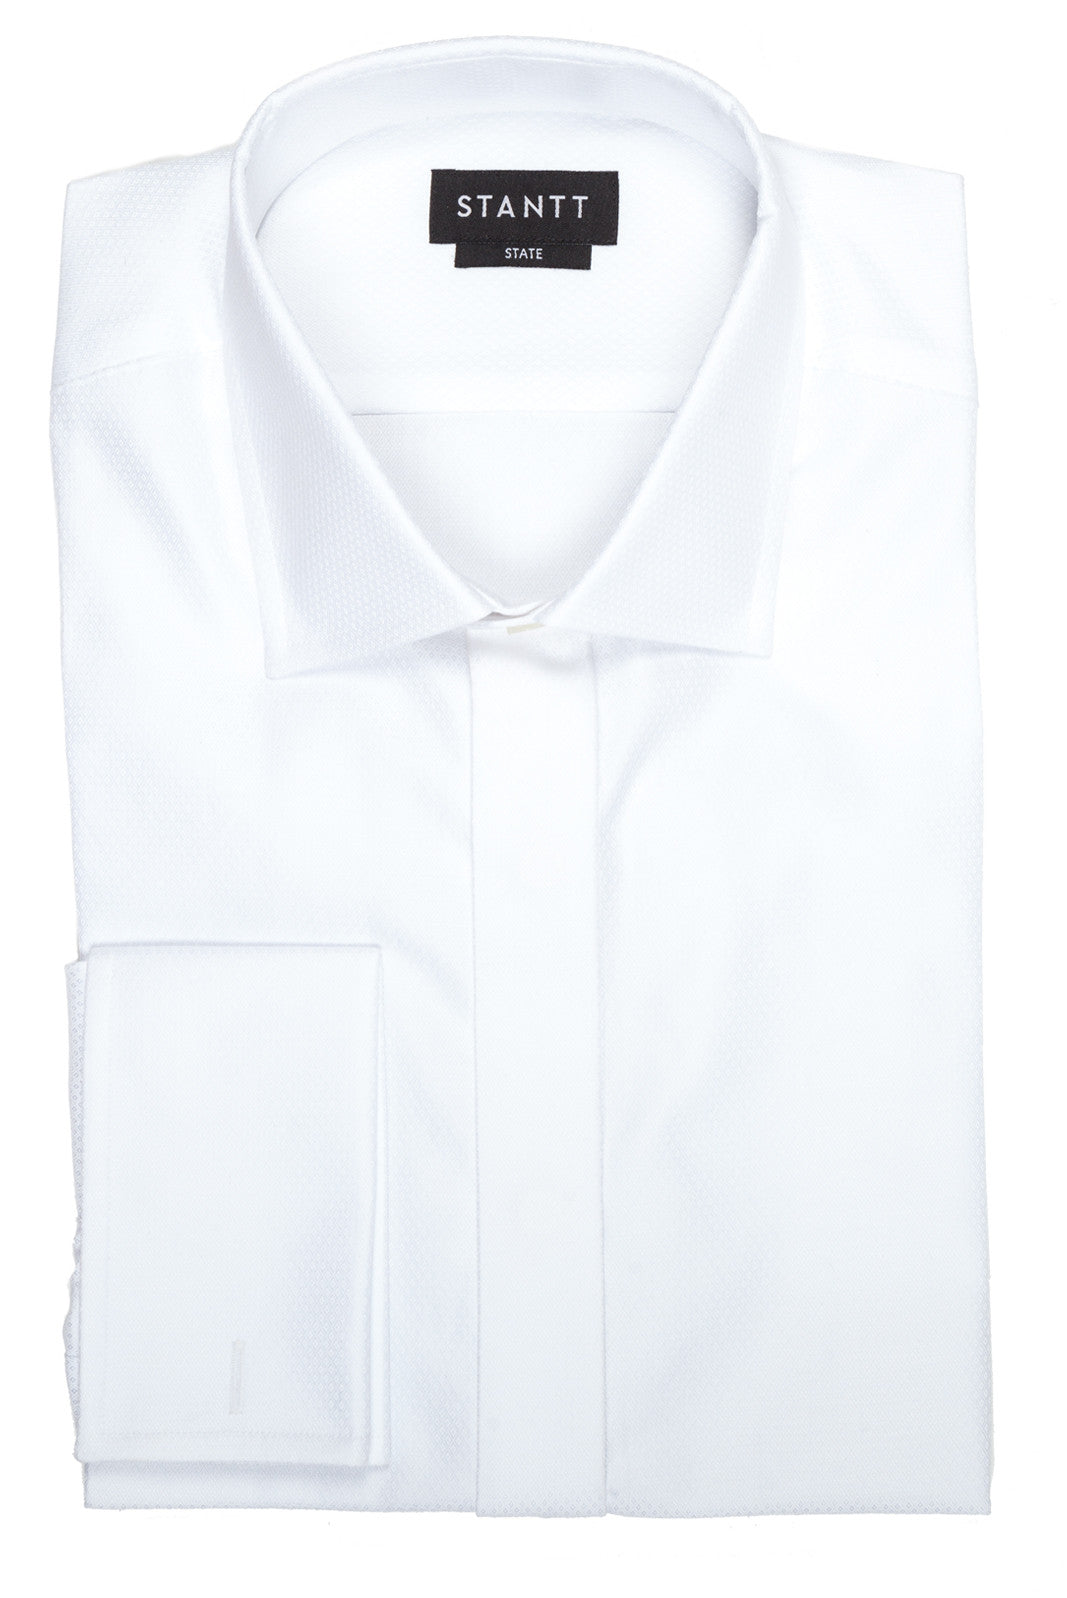 Fine White Poplin Formal Shirt: Hidden Placket